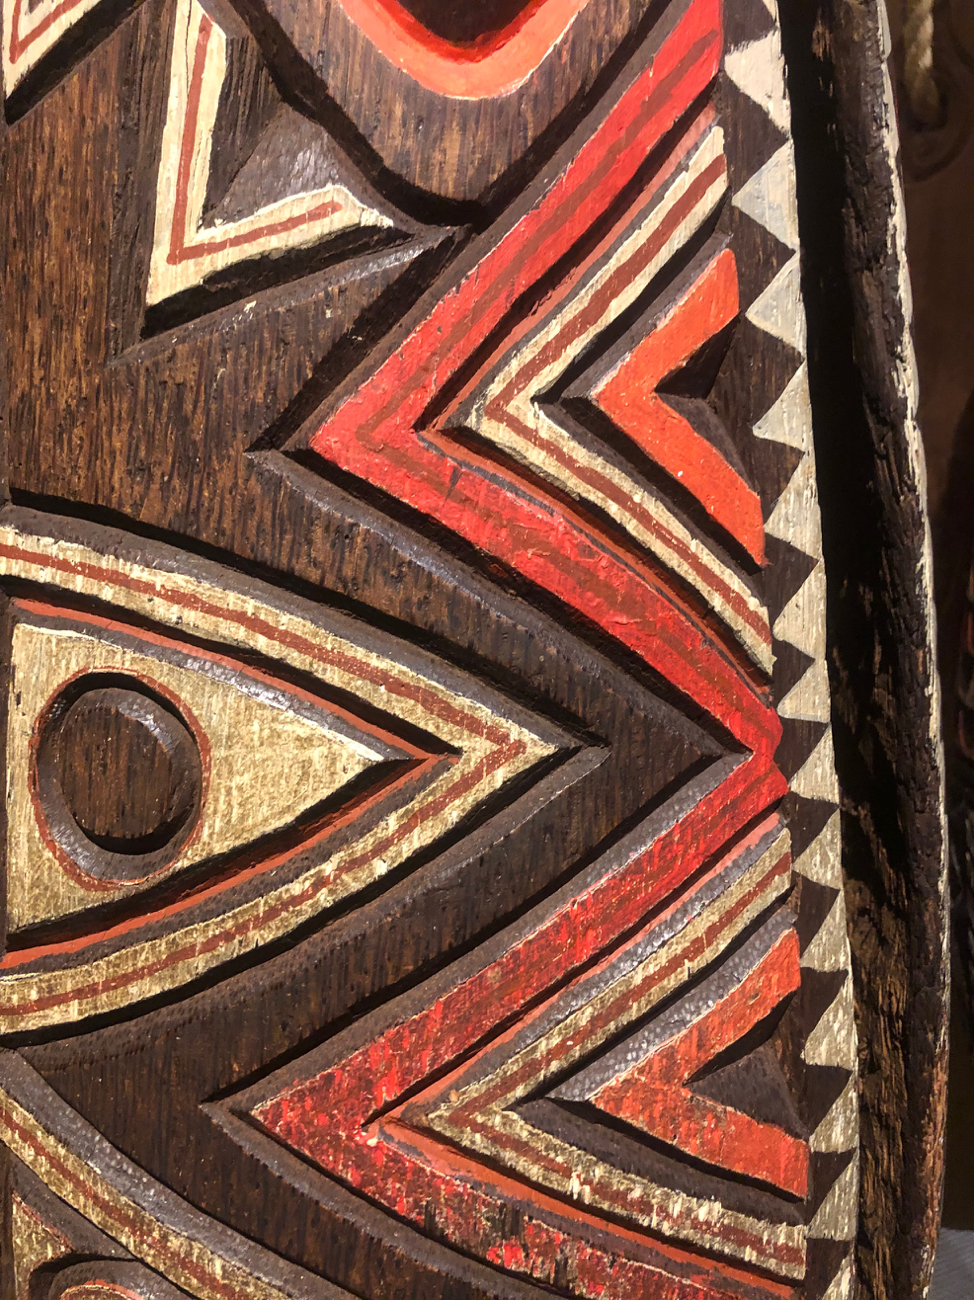 An example close-up of some aboriginal native art.